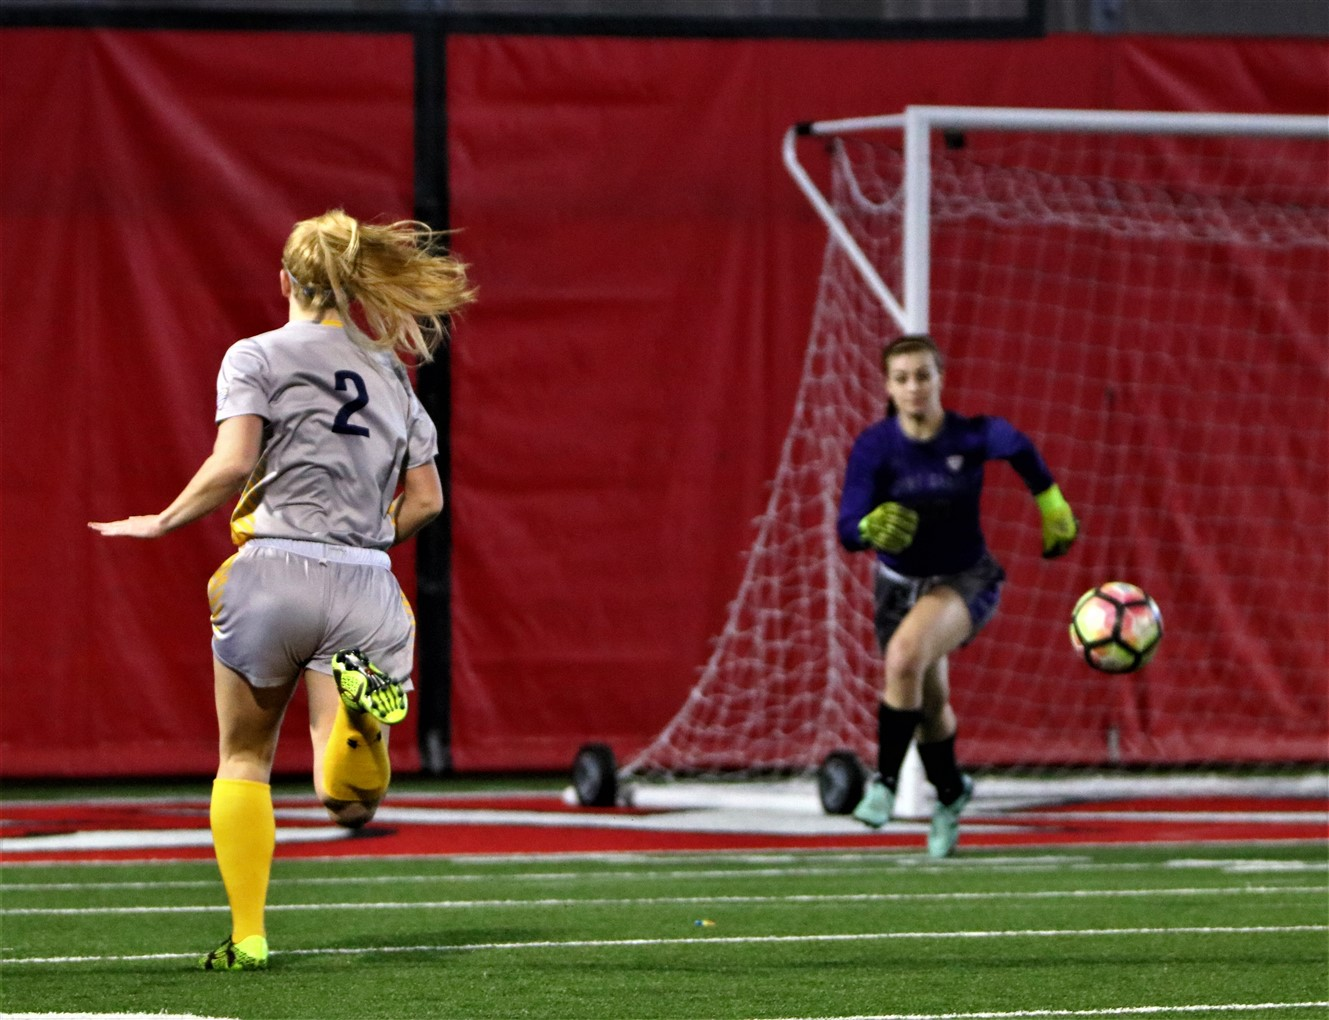 2017 03 05 51 Ohio State University Womens Soccer.jpg